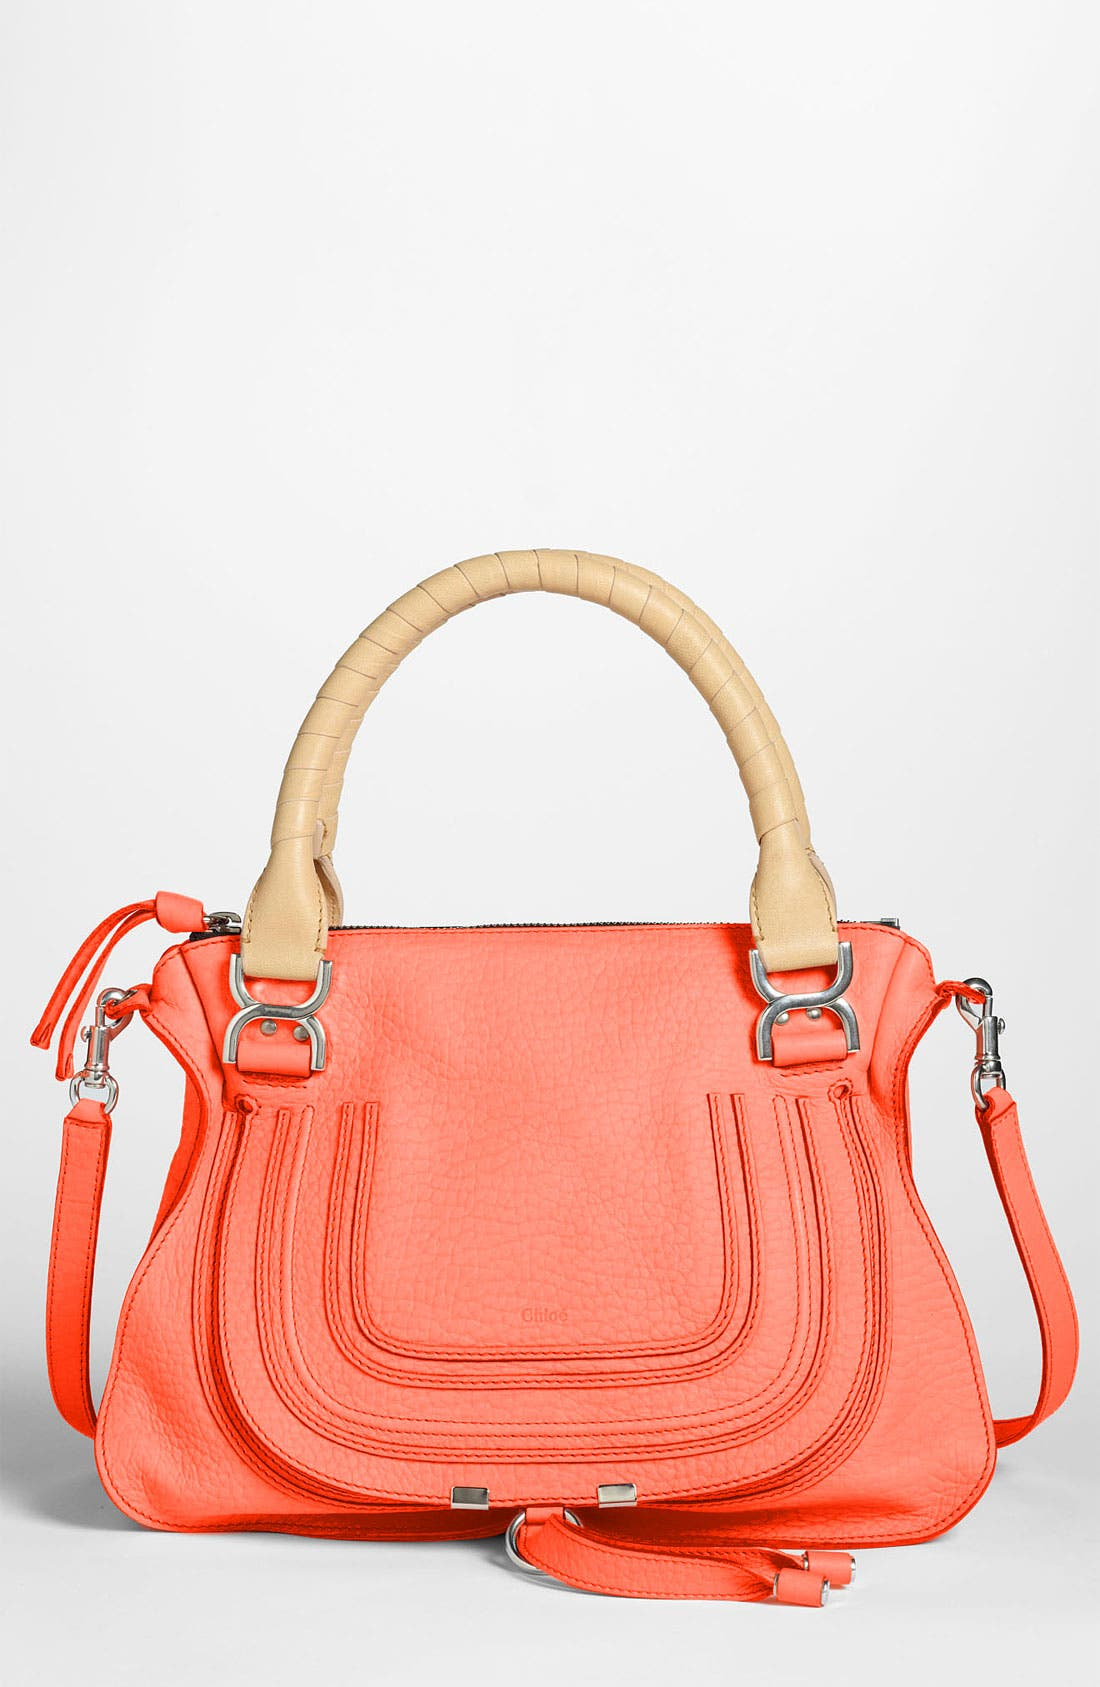 Alternate Image 1 Selected - Chloé 'Marcie - Small' Leather Satchel